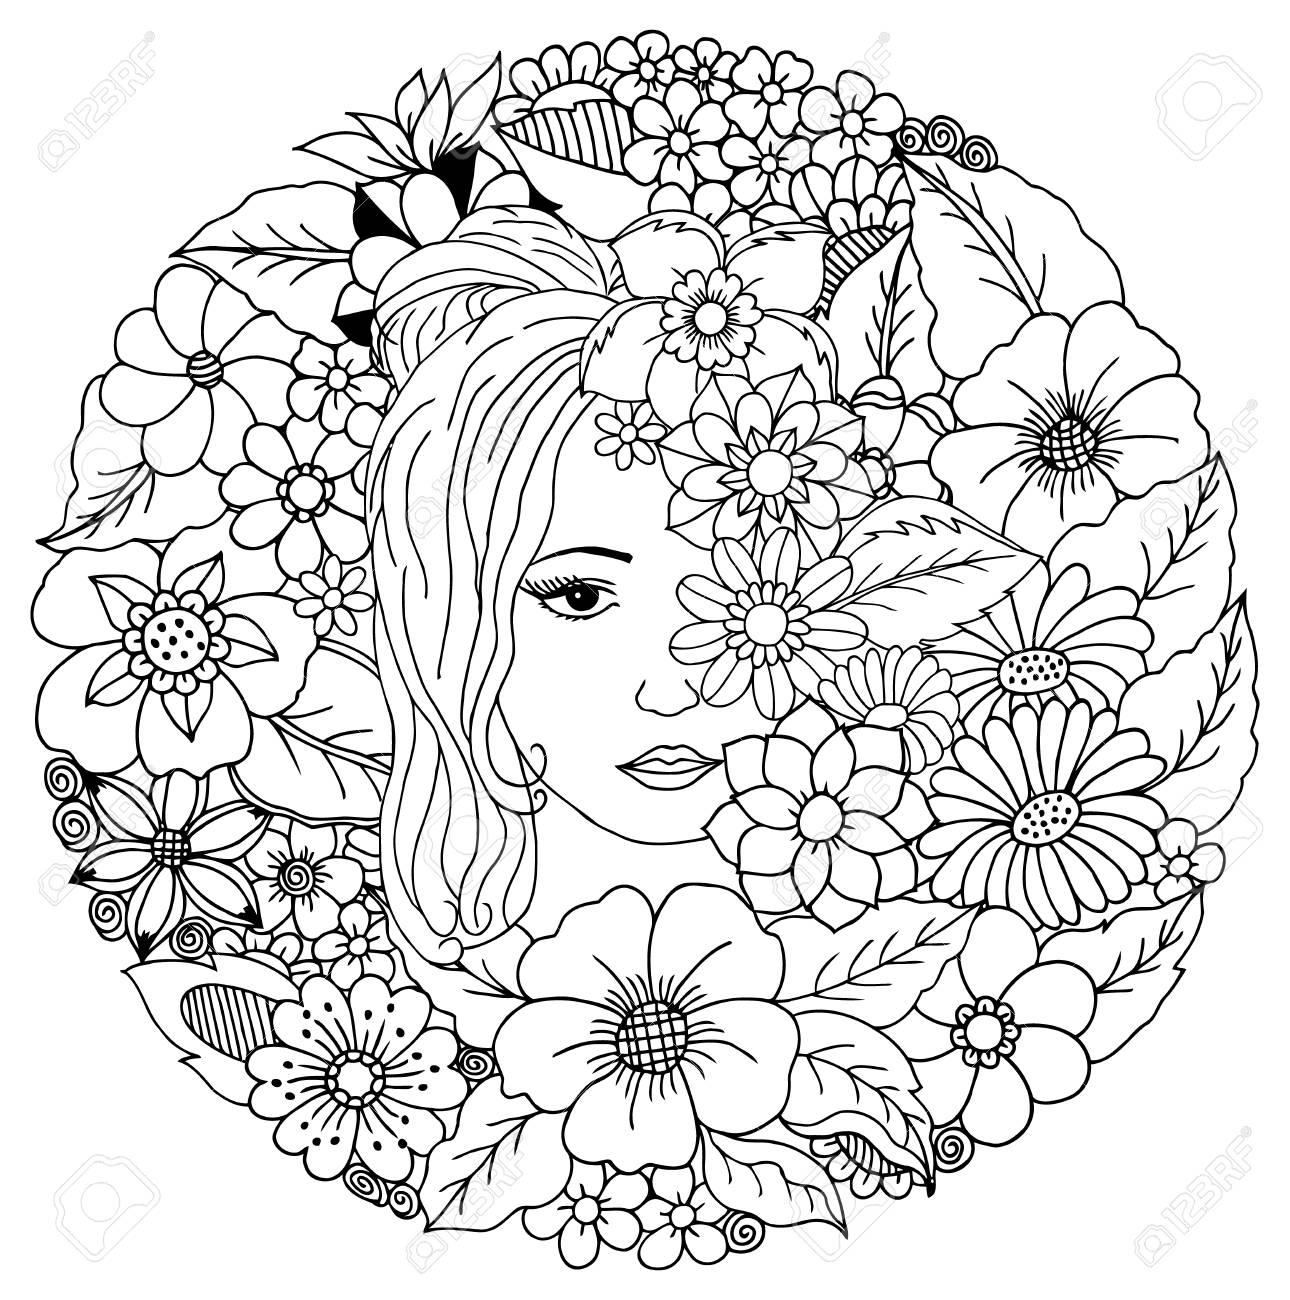 Illustration Girl Among The Flowers Coloring Book Anti Stress